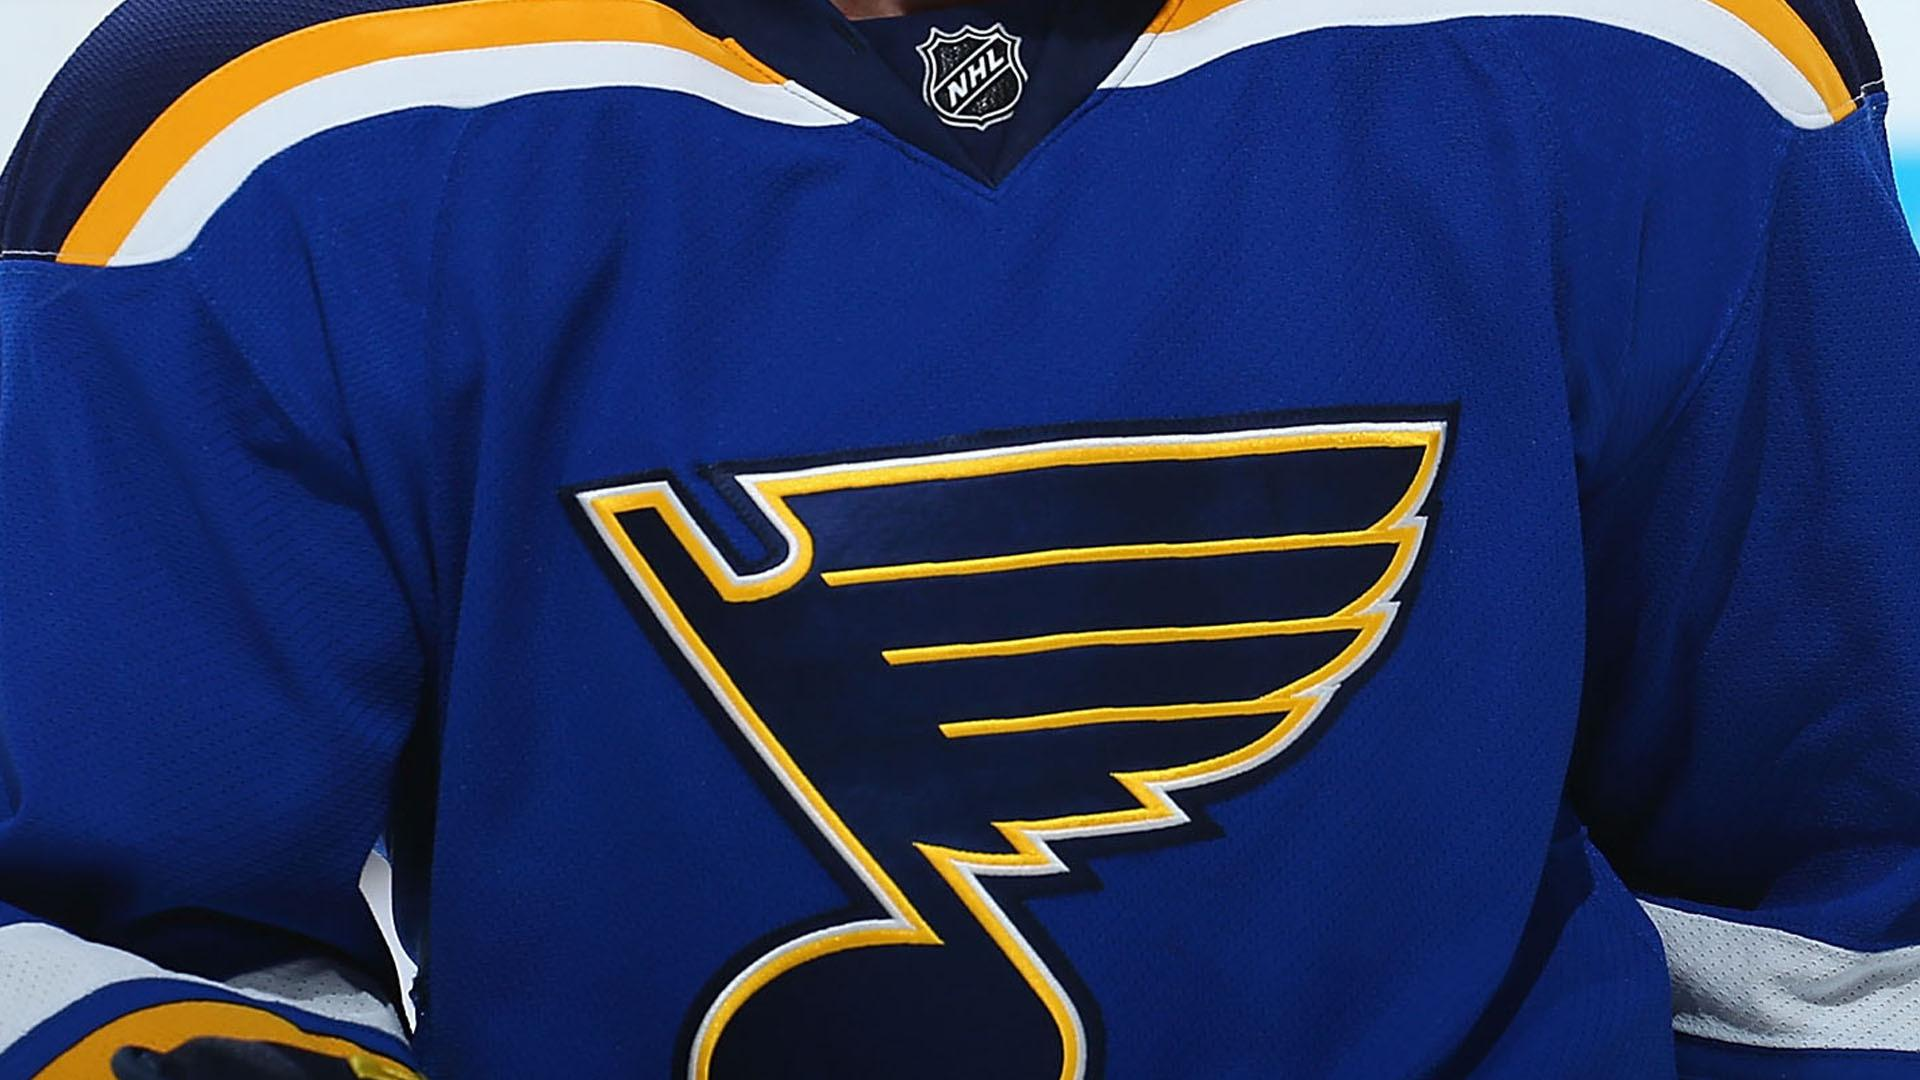 Super High Quality St Louis Blues Background Wallpapers for Free